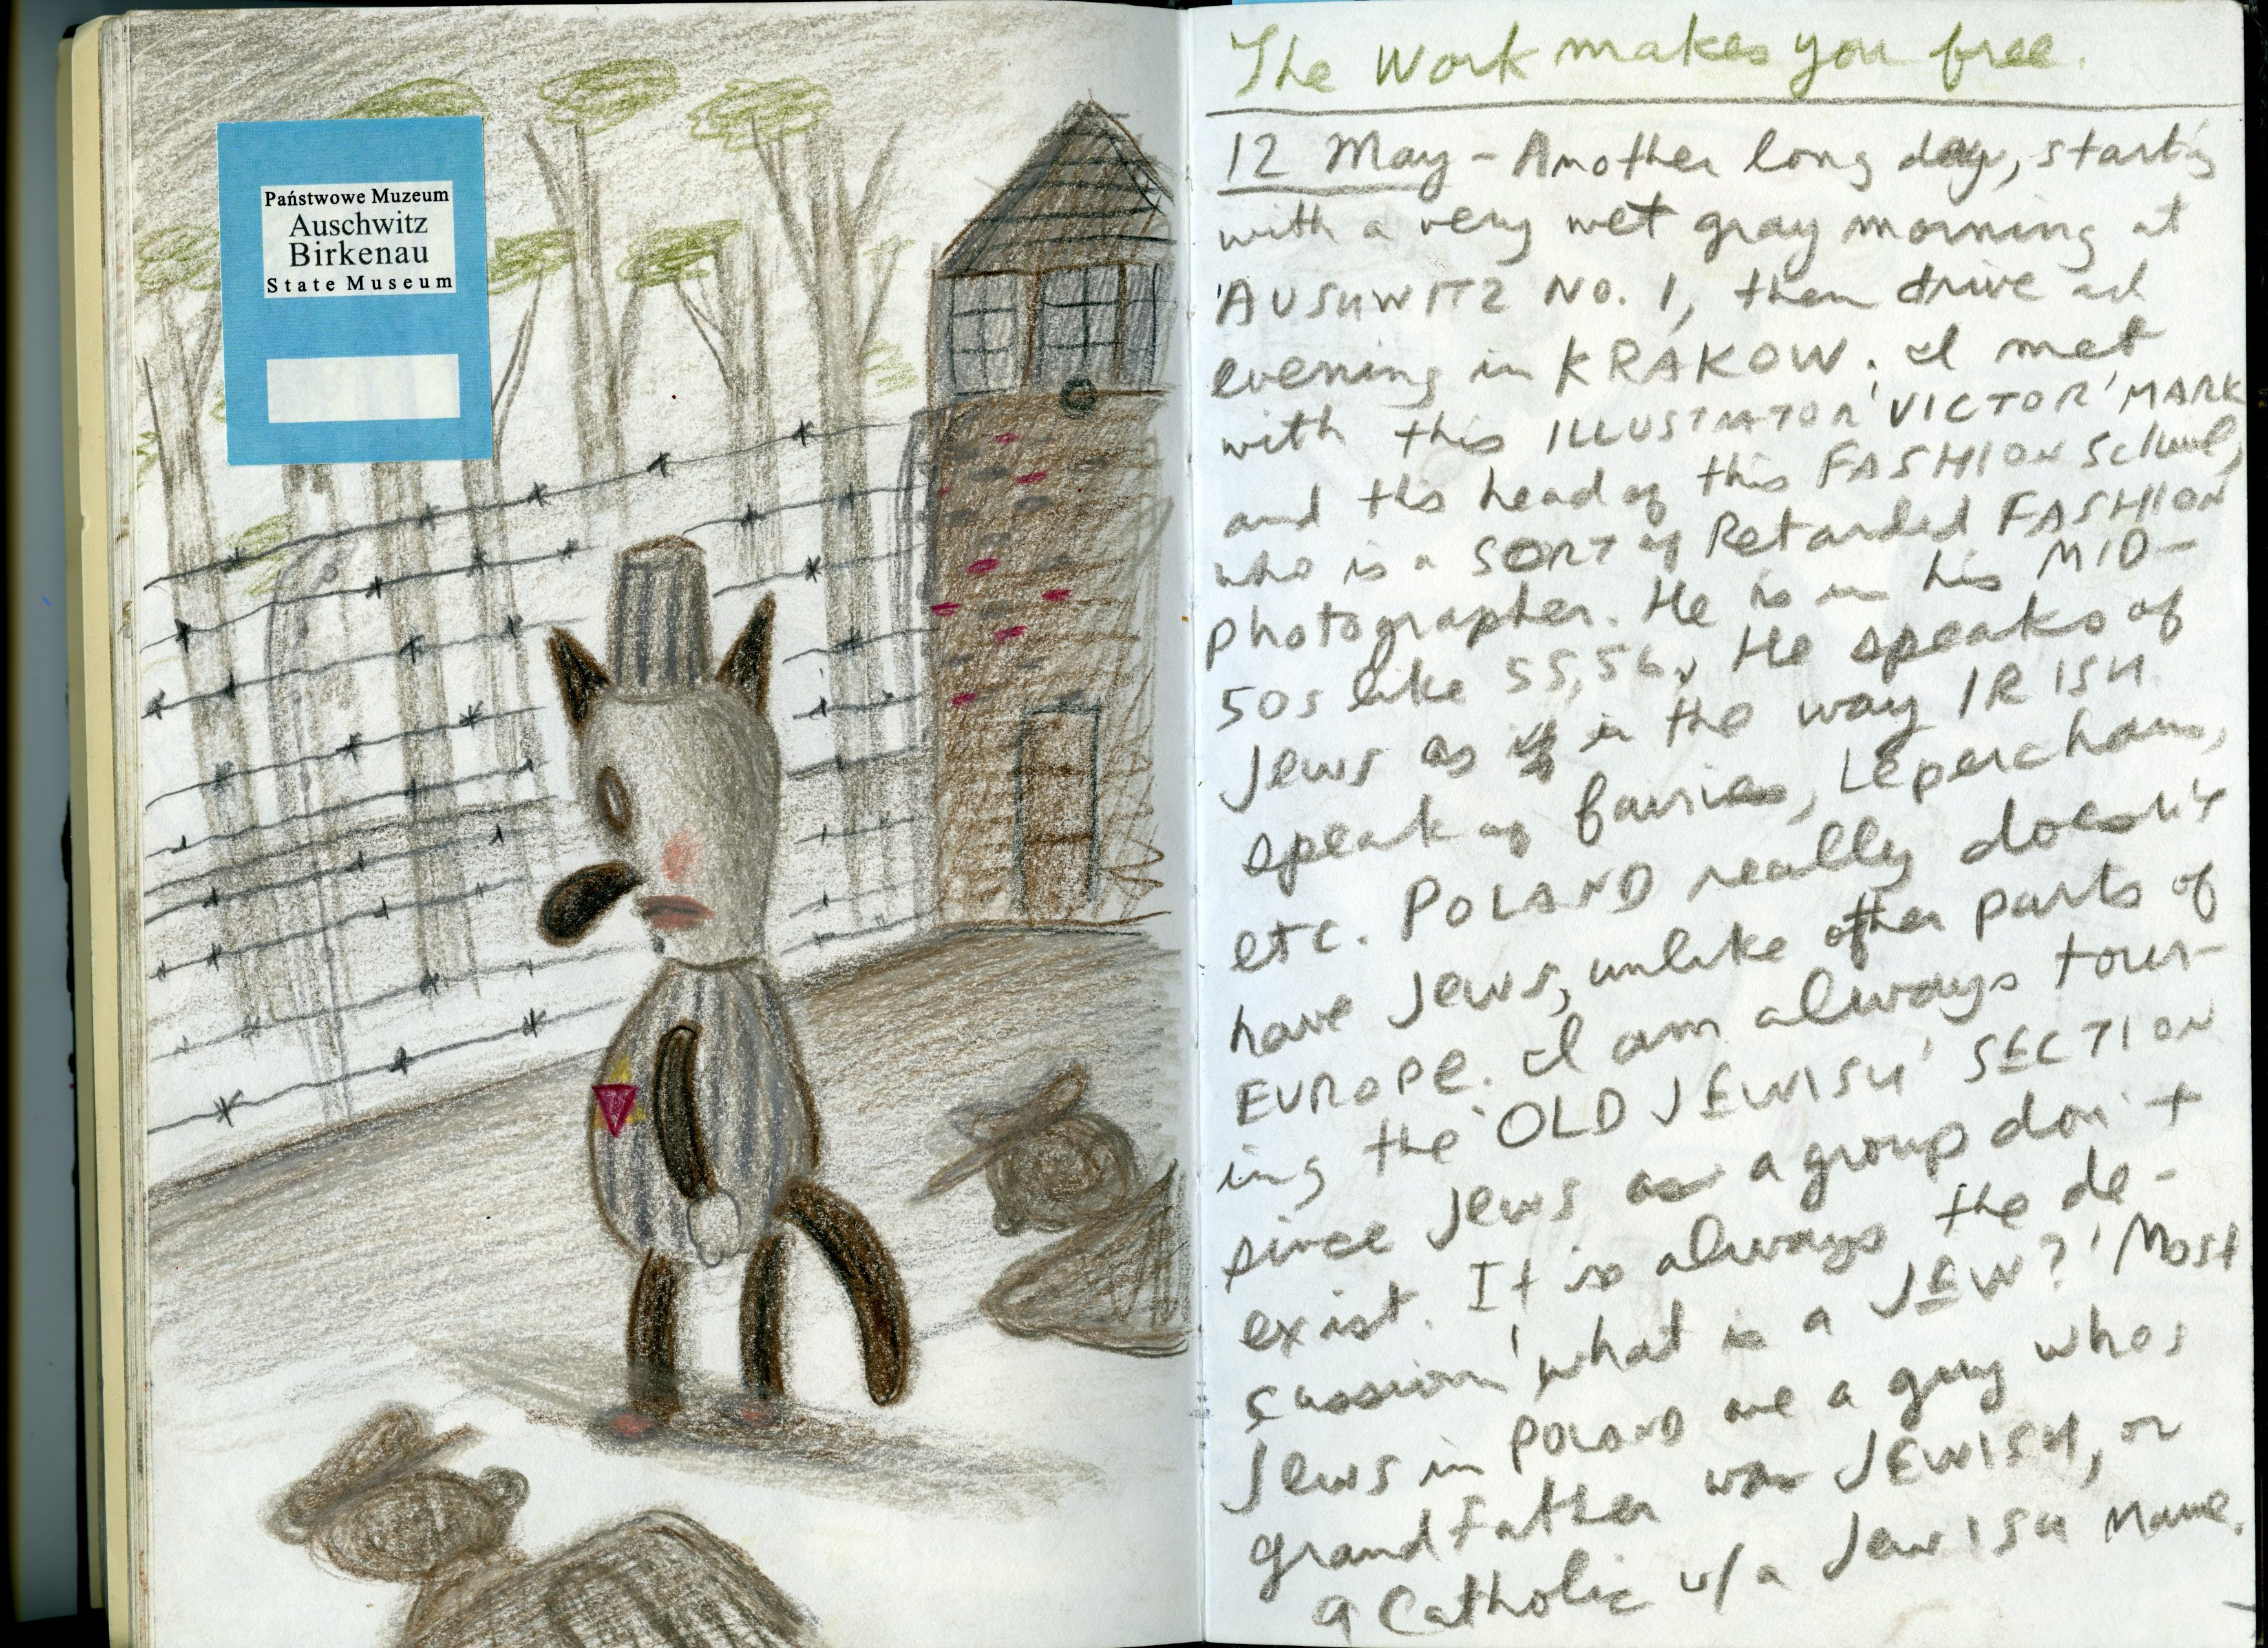 Image: Image of a sketchbook about Auschwitz.